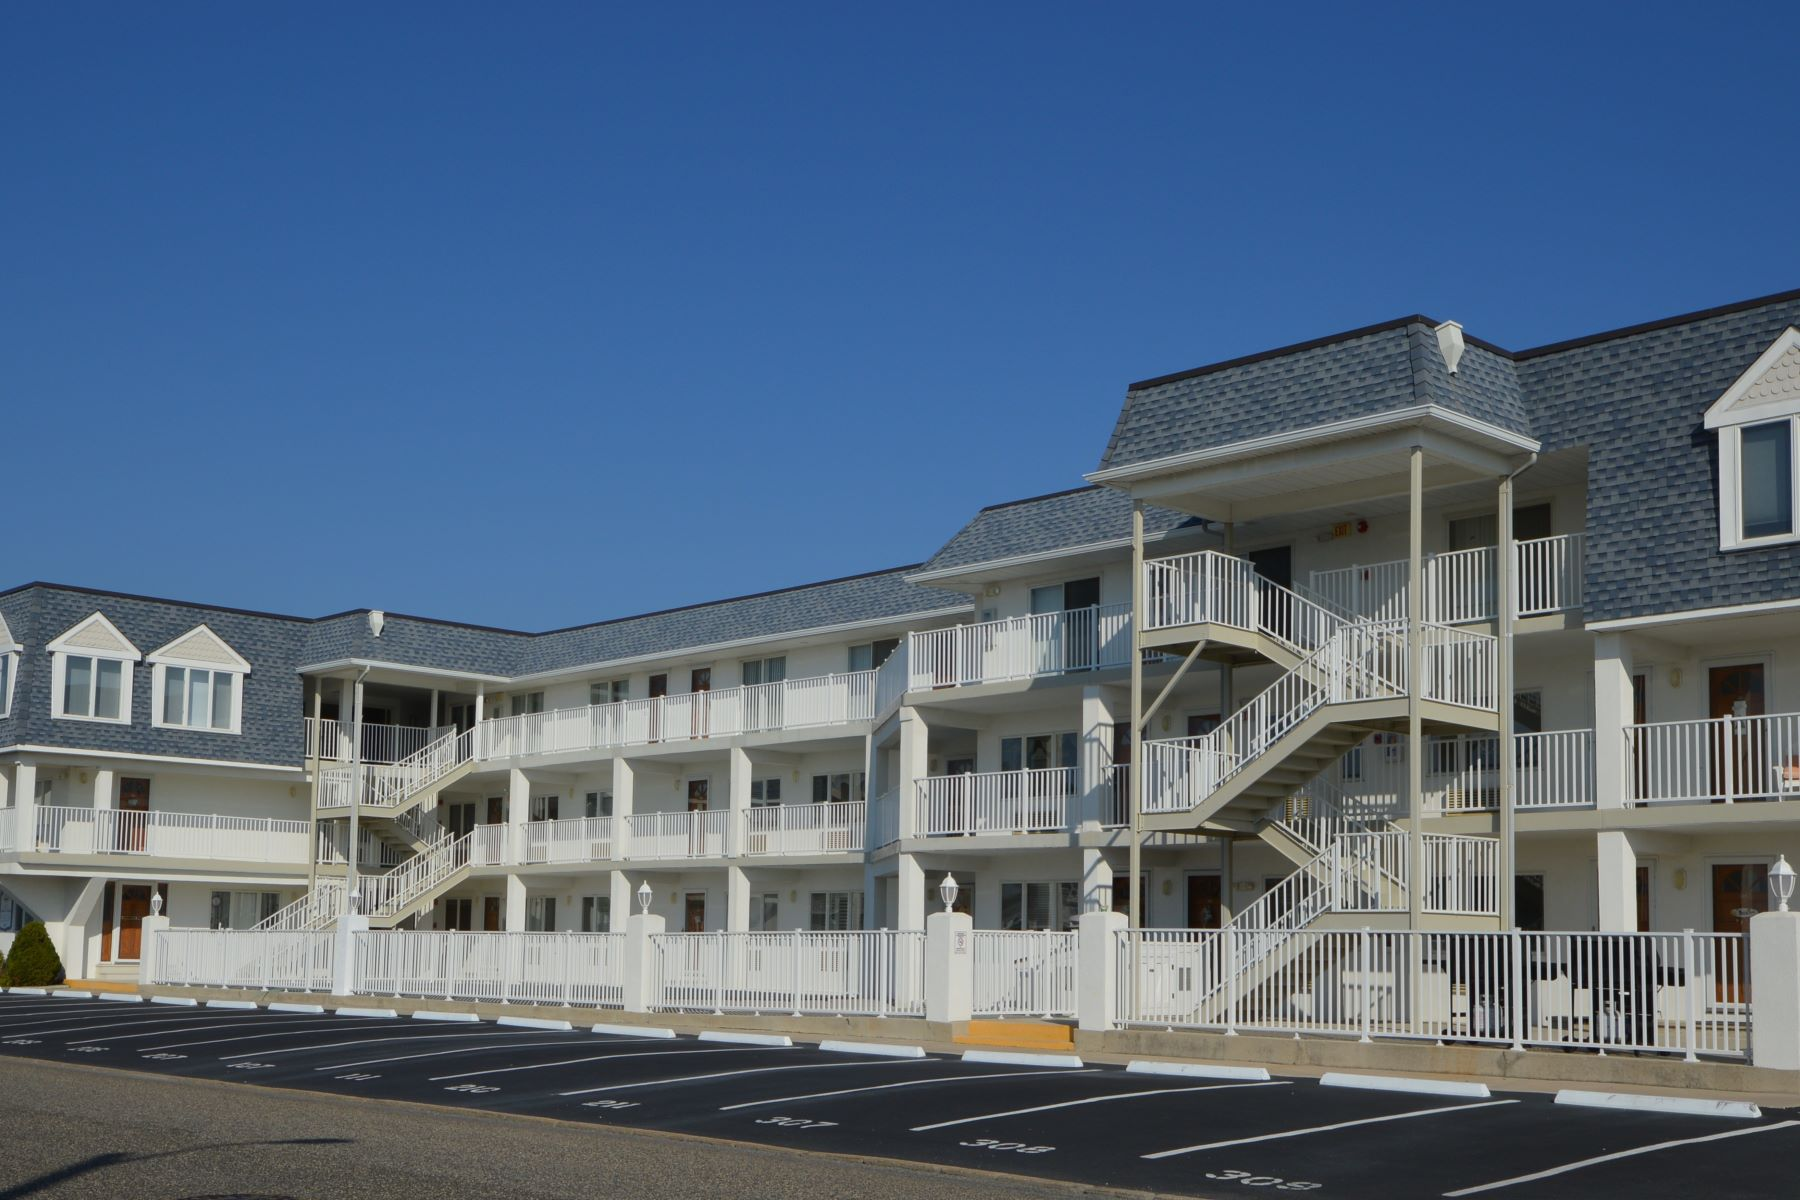 condominiums for Rent at Convenient Location Condo 177 80th Street Unit 101 Avalon, New Jersey 08202 United States